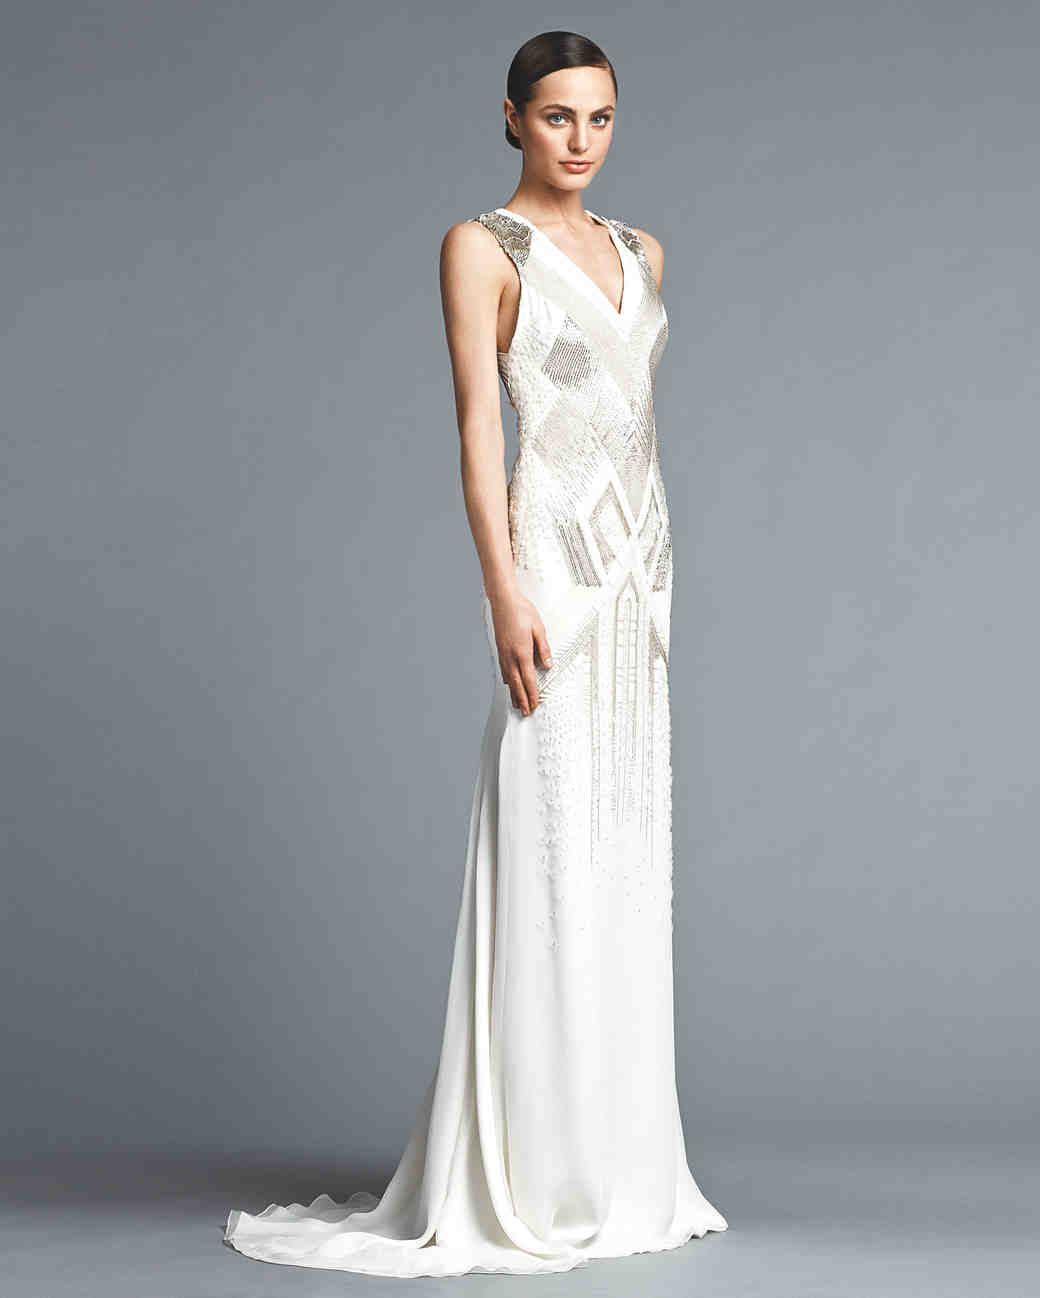 50-states-wedding-dresses-california-jmendel-s112015-0615.jpg